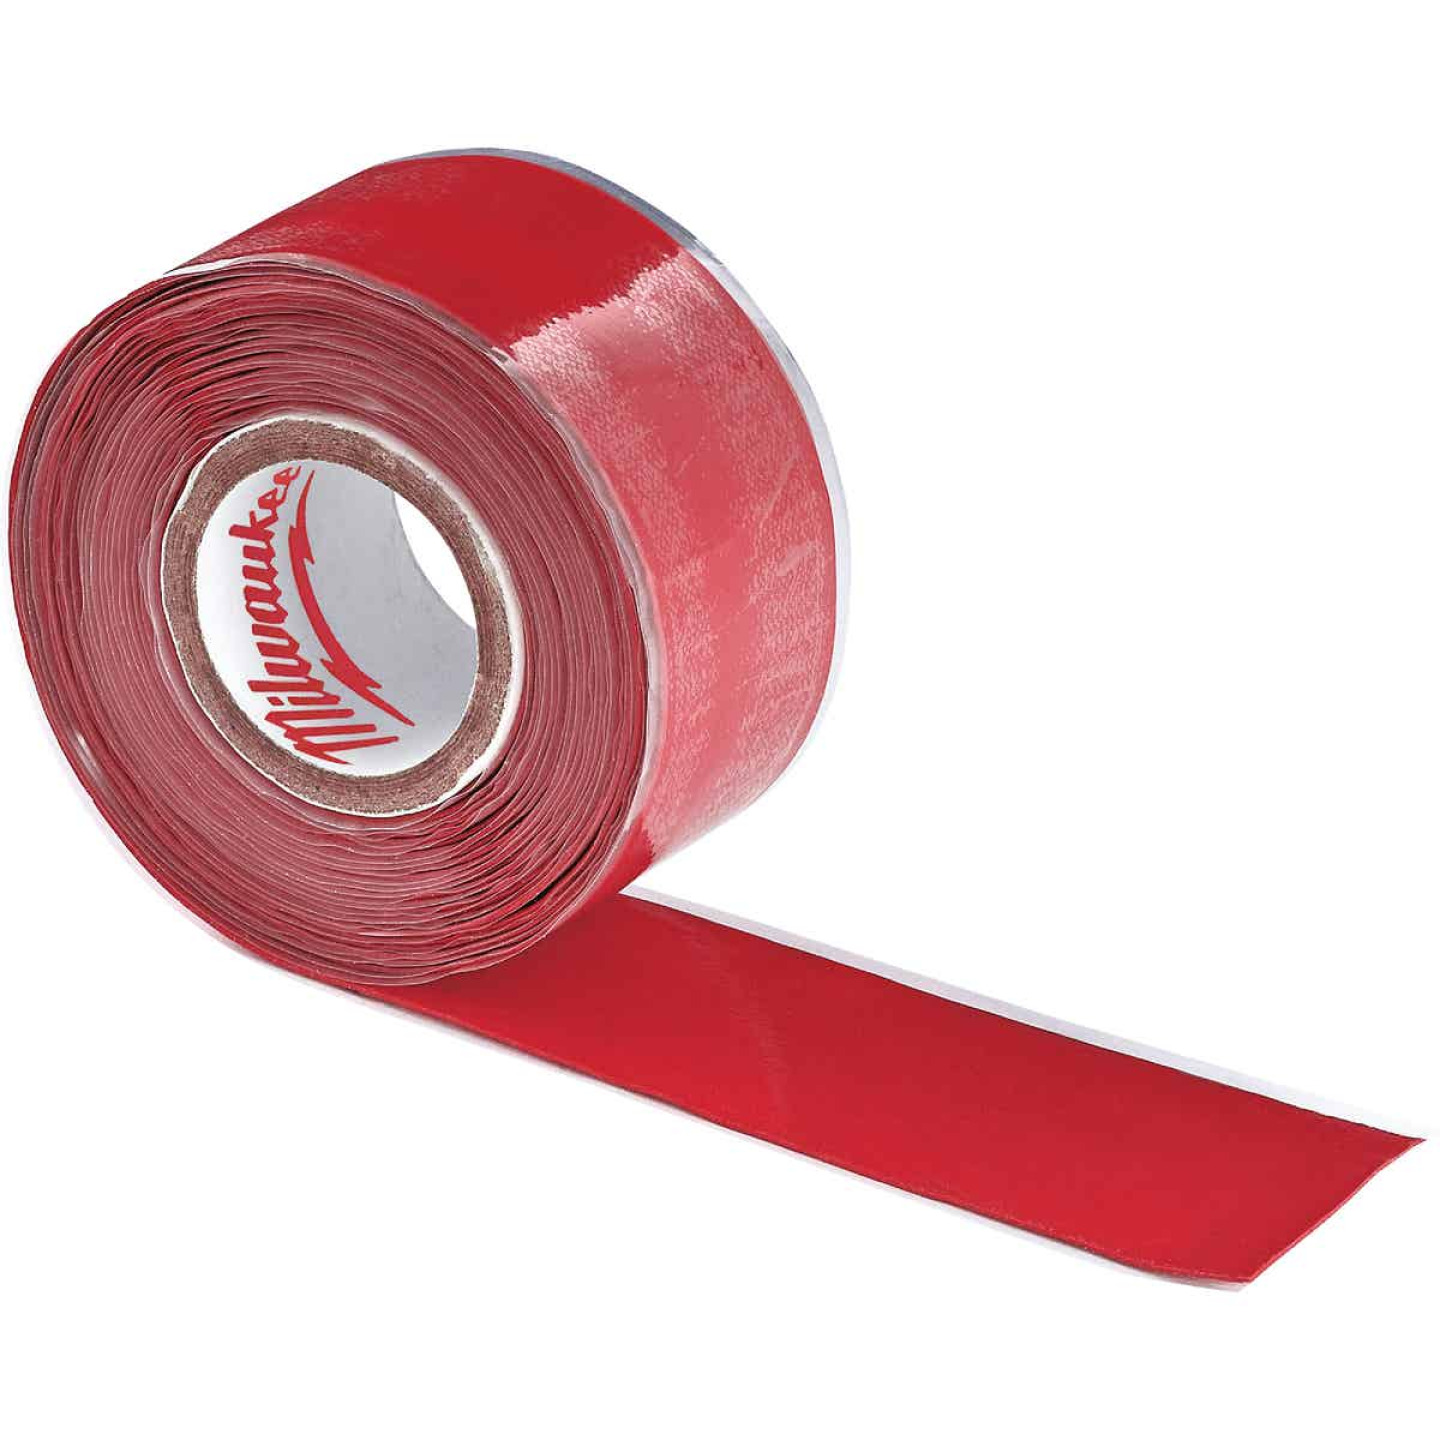 Milwaukee 2-1/2 In. W x 12 Ft. L Self-Adhering Lanyard Tape Image 1